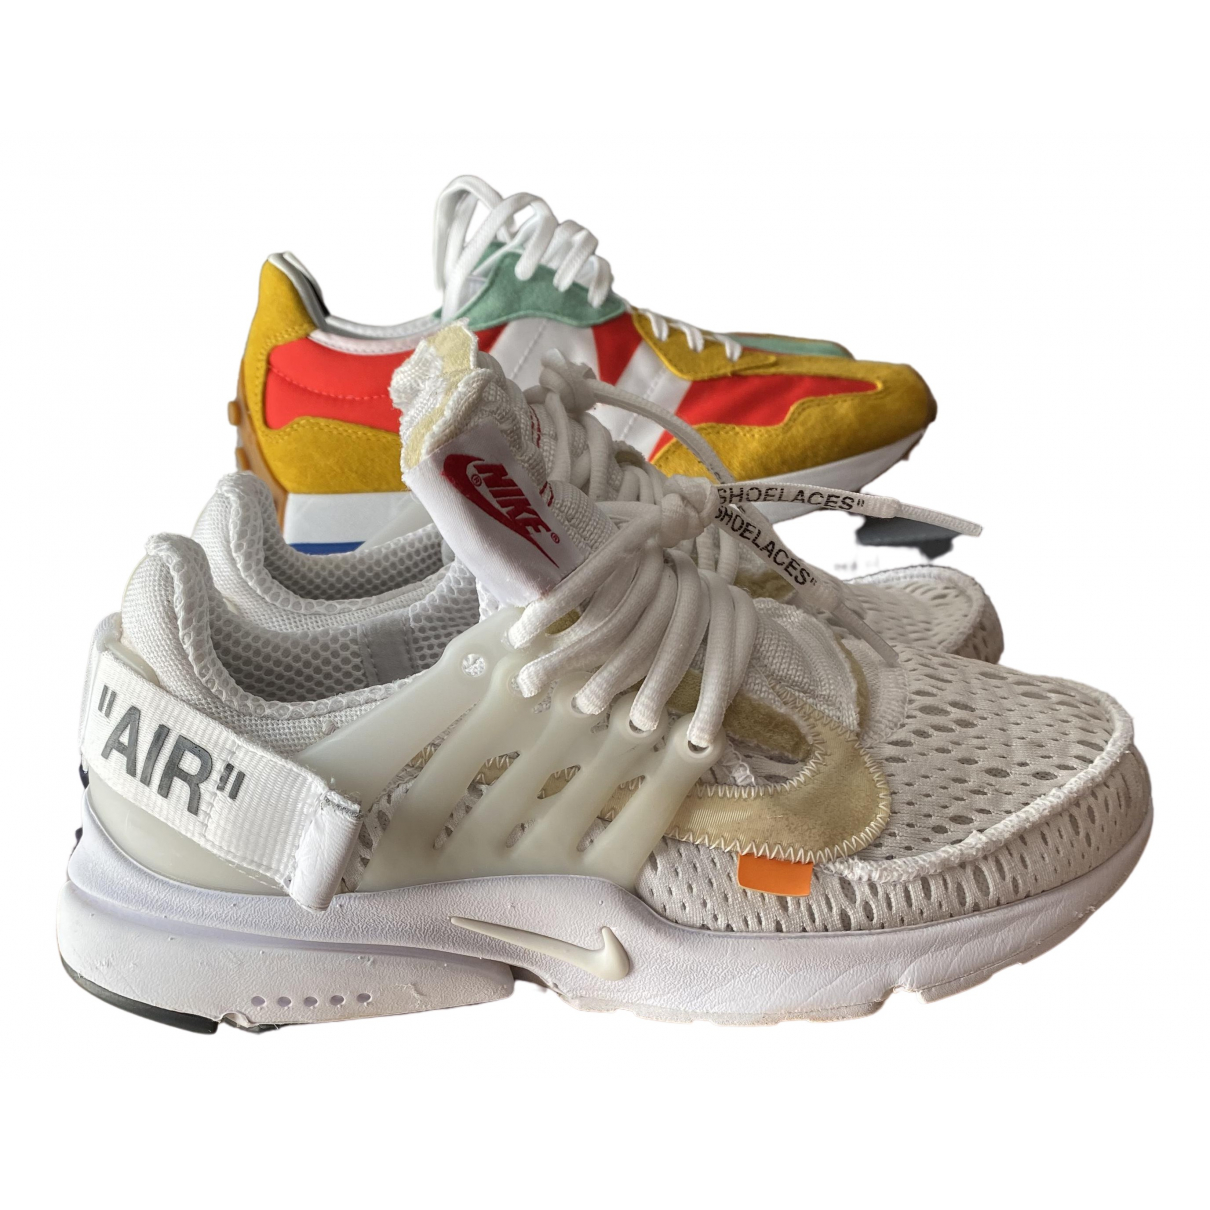 Nike X Off-white Air Presto White Cloth Trainers for Men 6 US